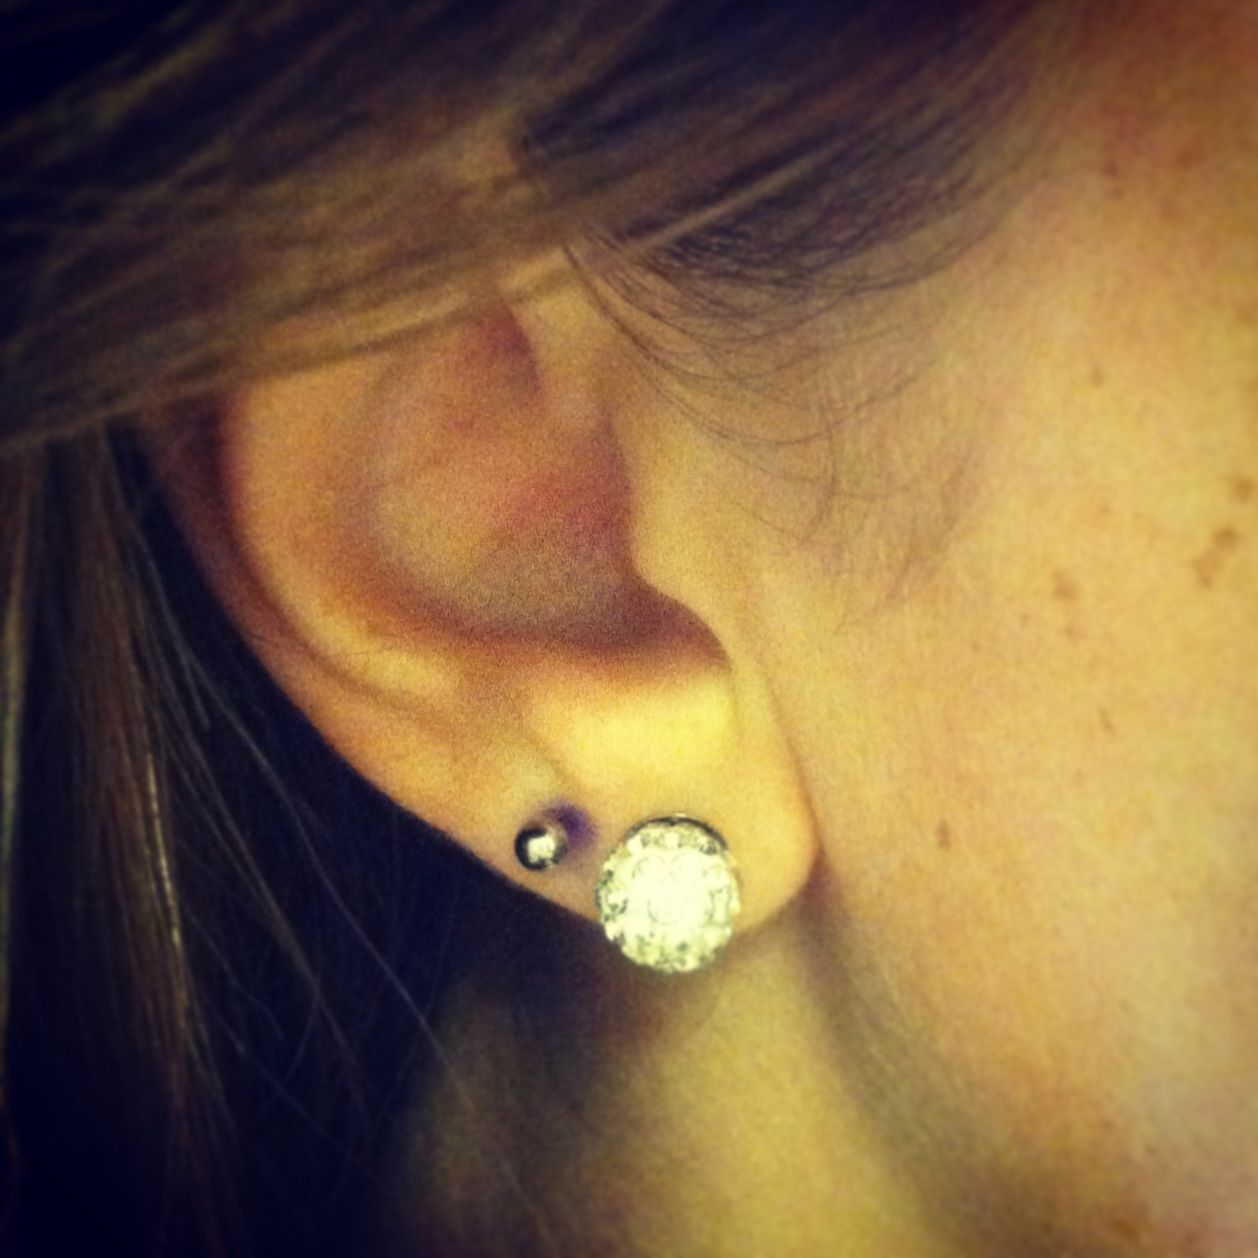 Piercing nose hole  I got my second earring hole done I love it nd piercing  Body